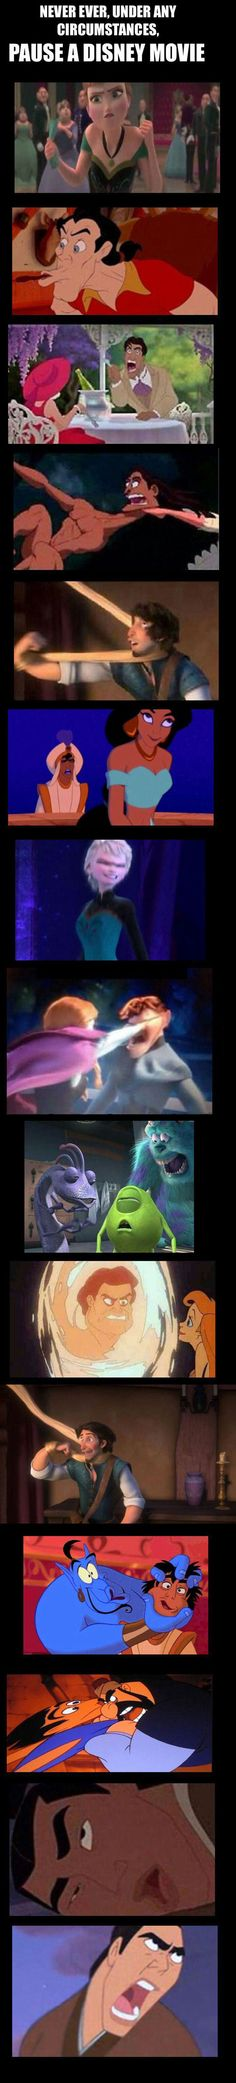 Pausing A Disney Movie At The Wrong Time